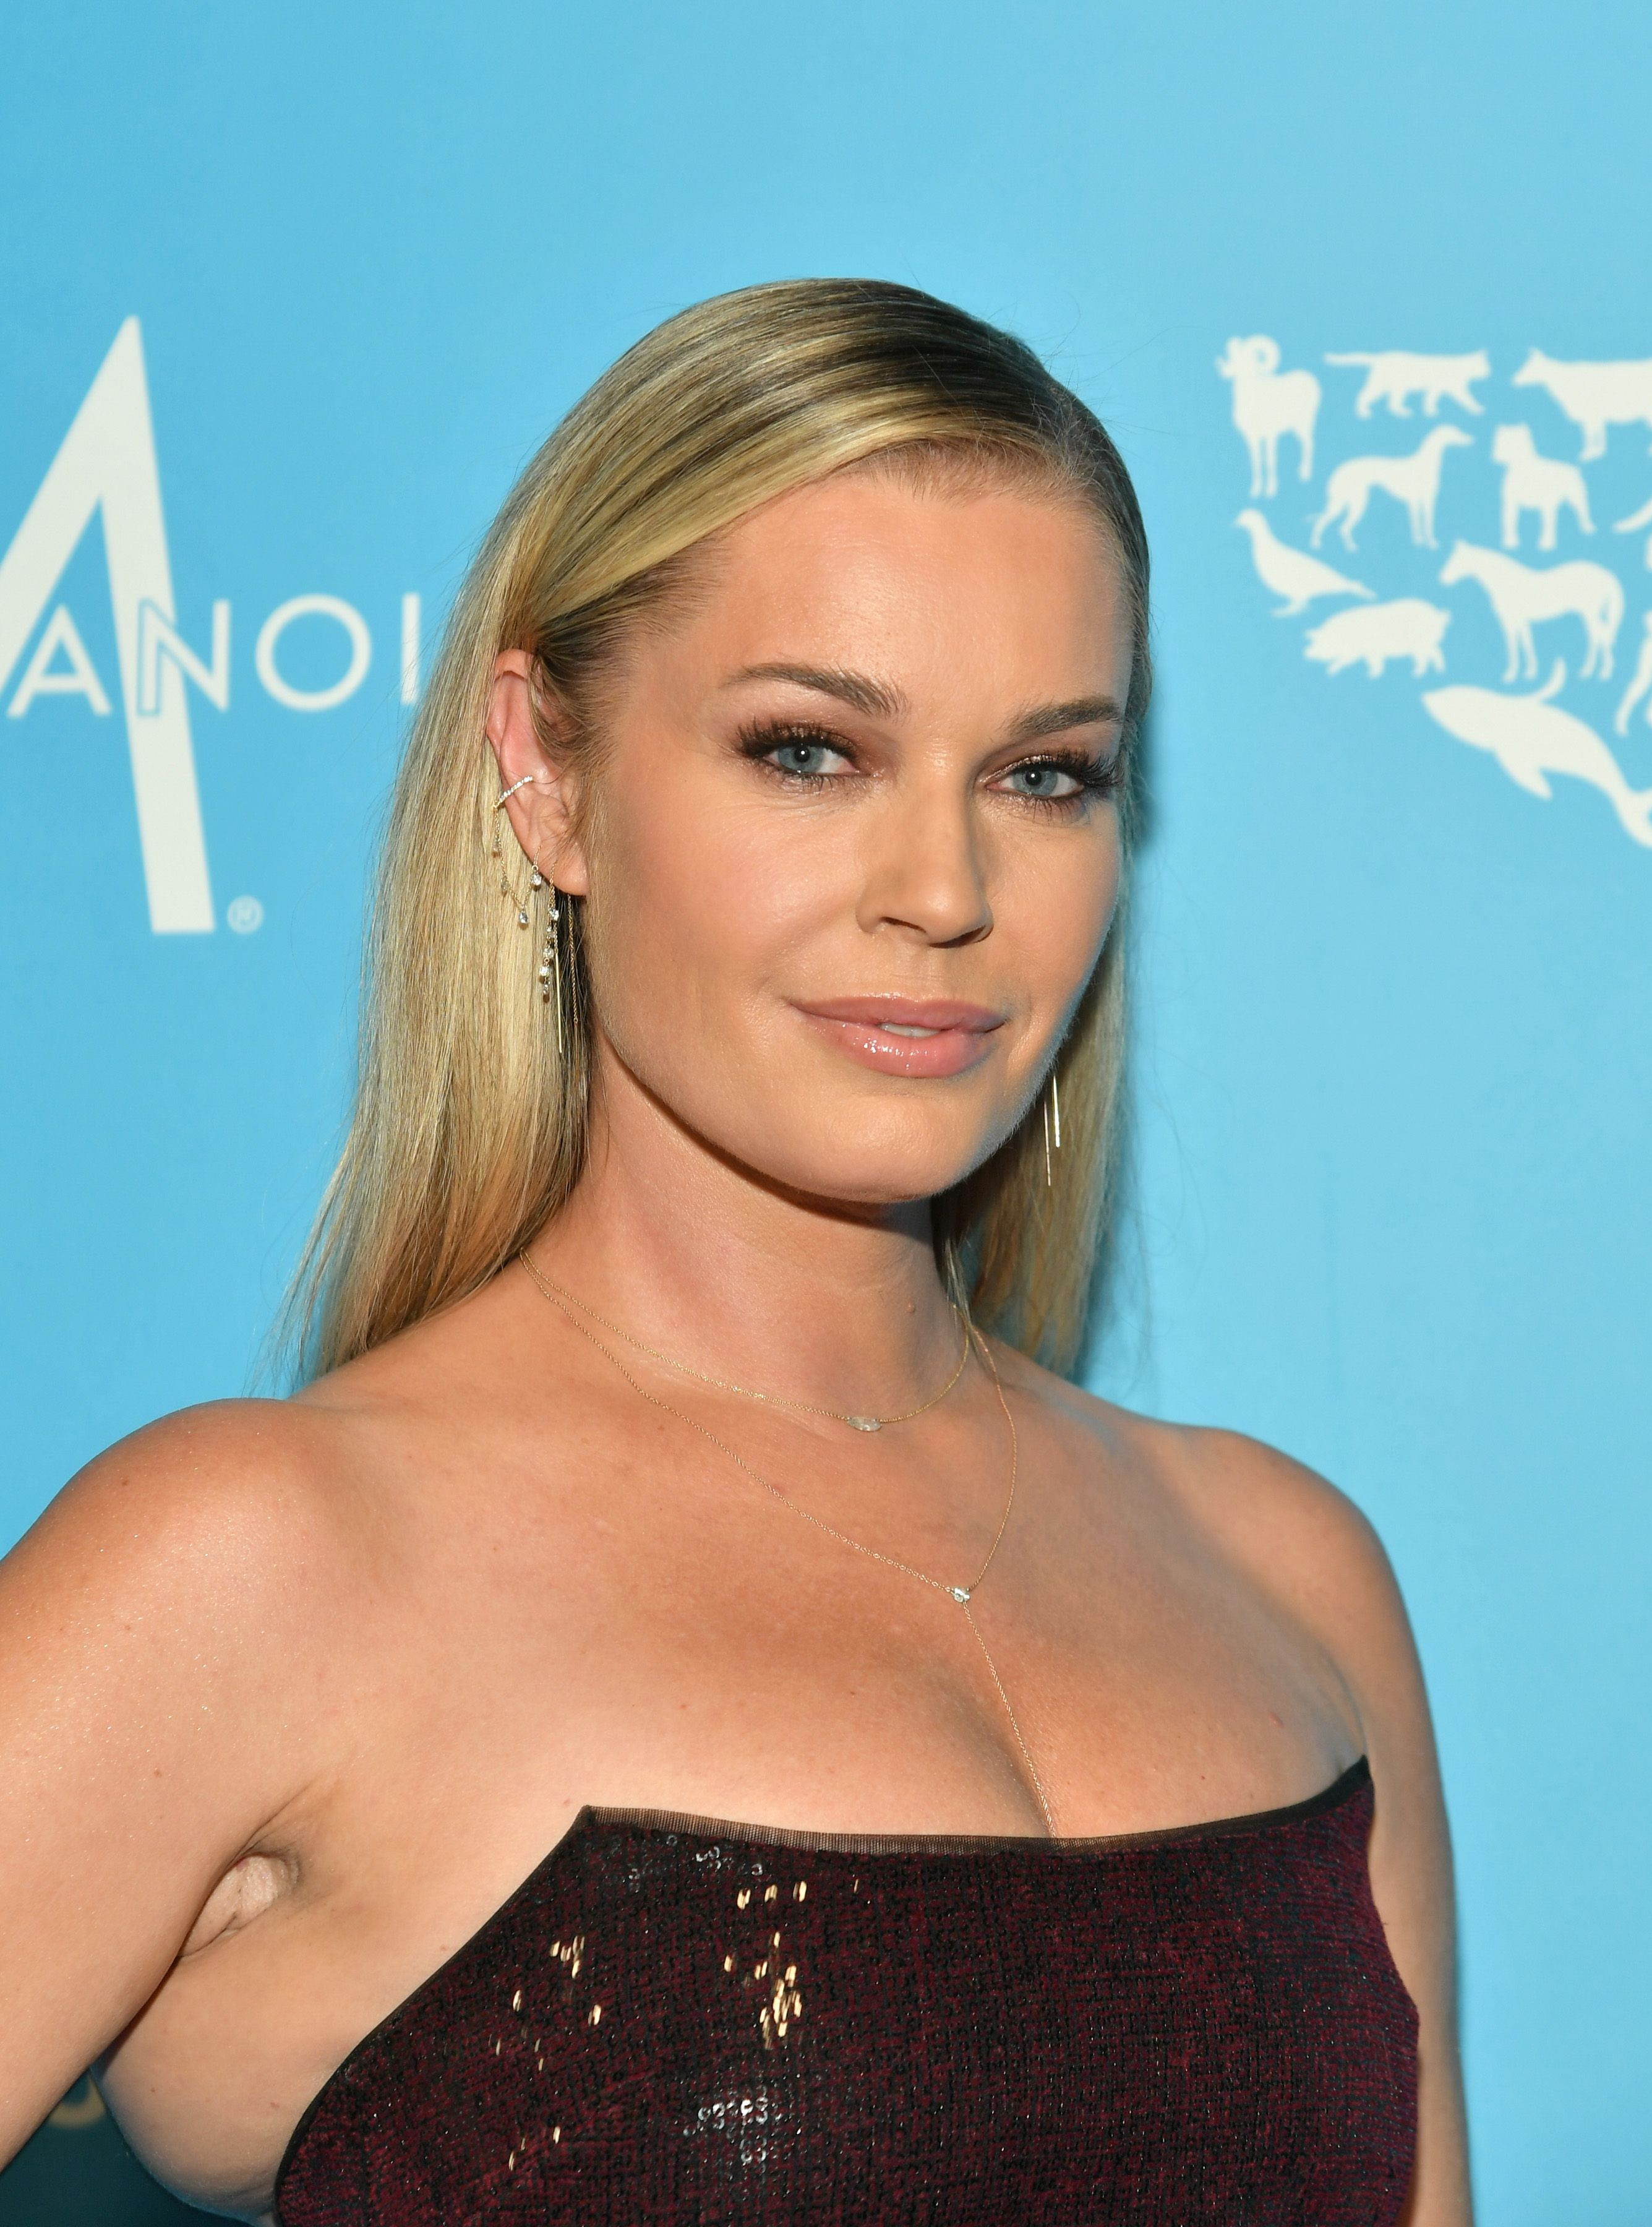 Rebecca Romijn at the Humane Society Of The United States To The Rescue! New York Gala  in 2019 in New York City | Photo: Getty Images